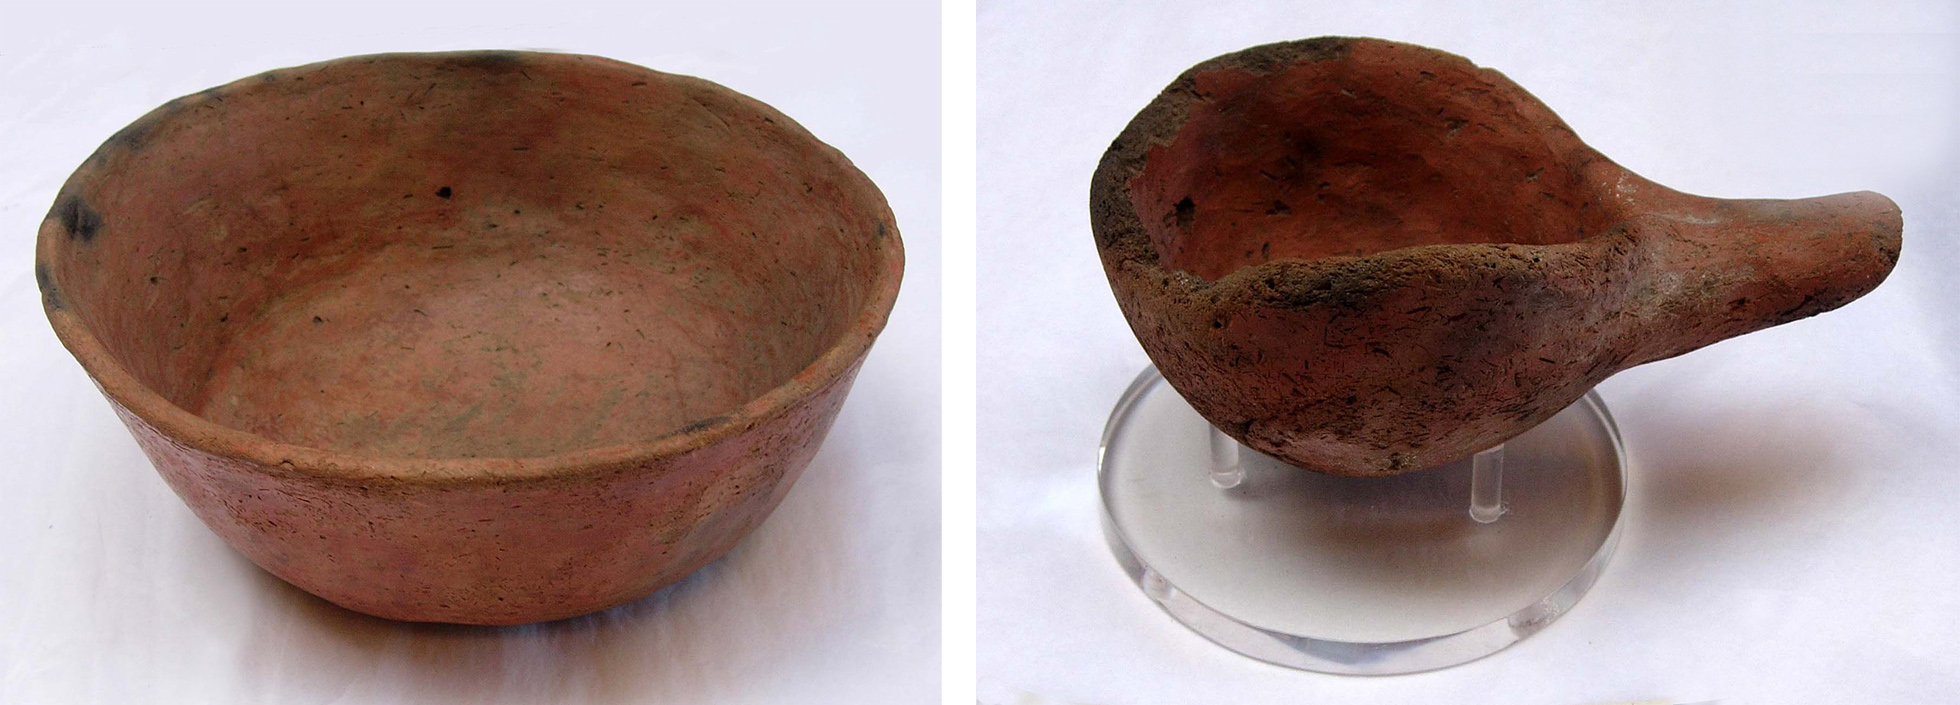 Two photographs of utilitarian medieval Nubian tableware. On the left there is a photograph of a large communal bowl, on the left a serving ladle. They are a reddish-brown colour and made of dense mud.